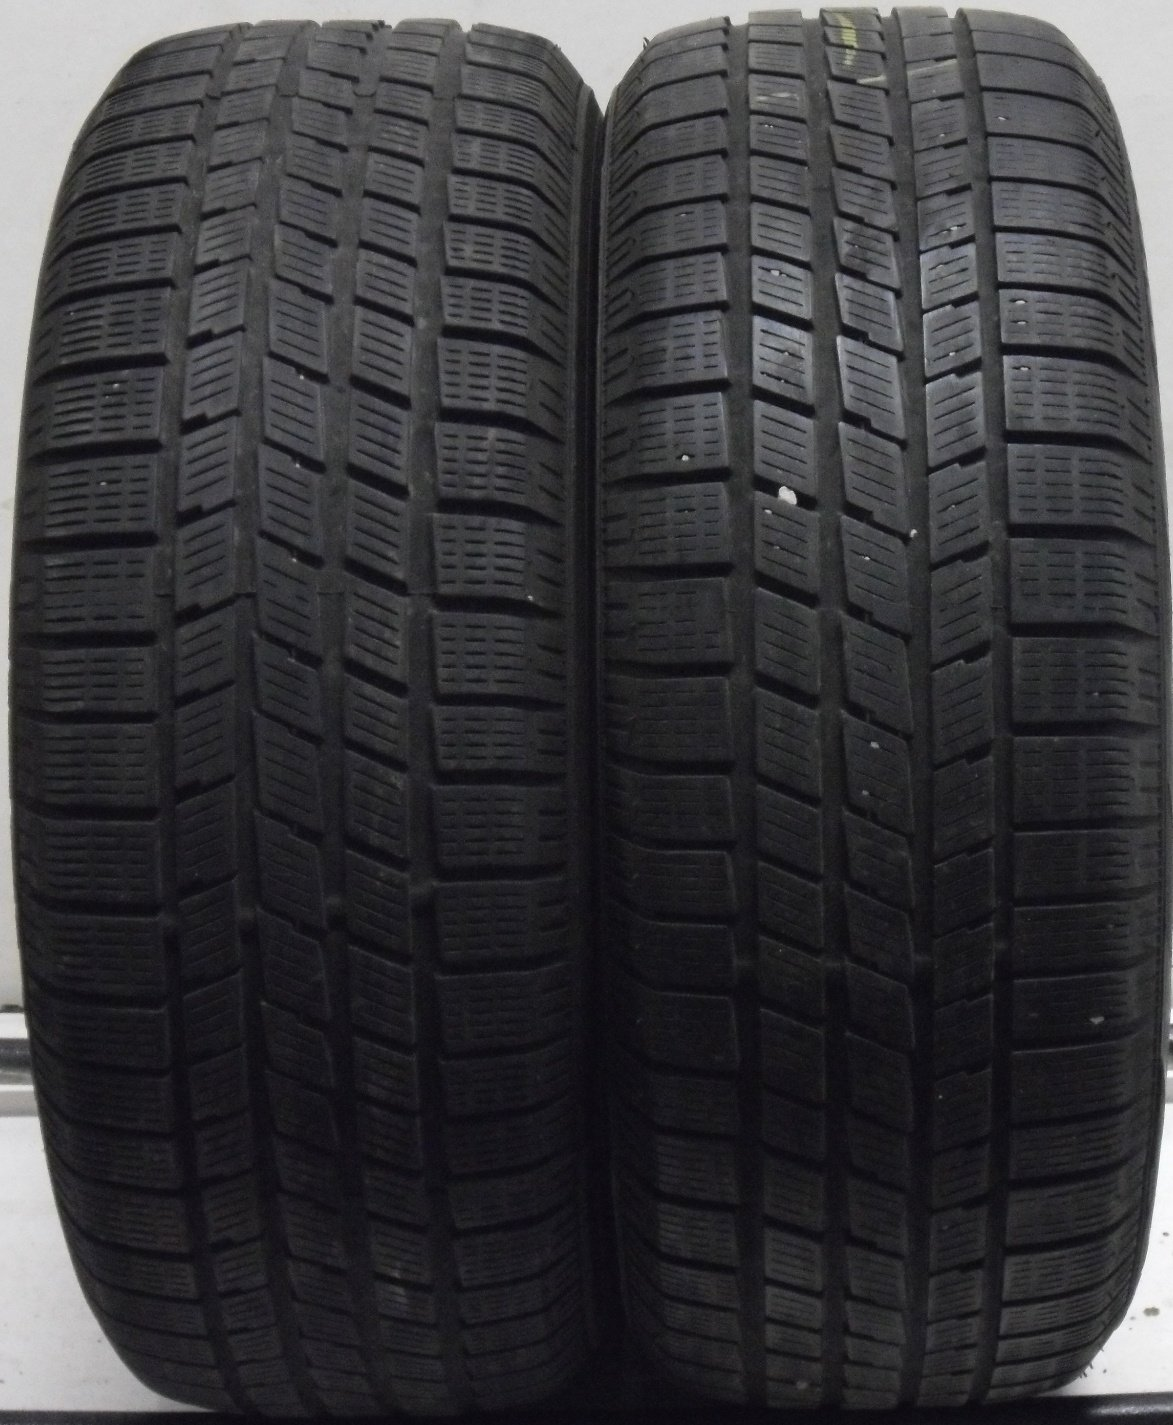 2 2055516 Pirelli 205 55 16 Winter Part Worn Car Tyres 190 Snow Sport x2 Two 4mm to 5mm